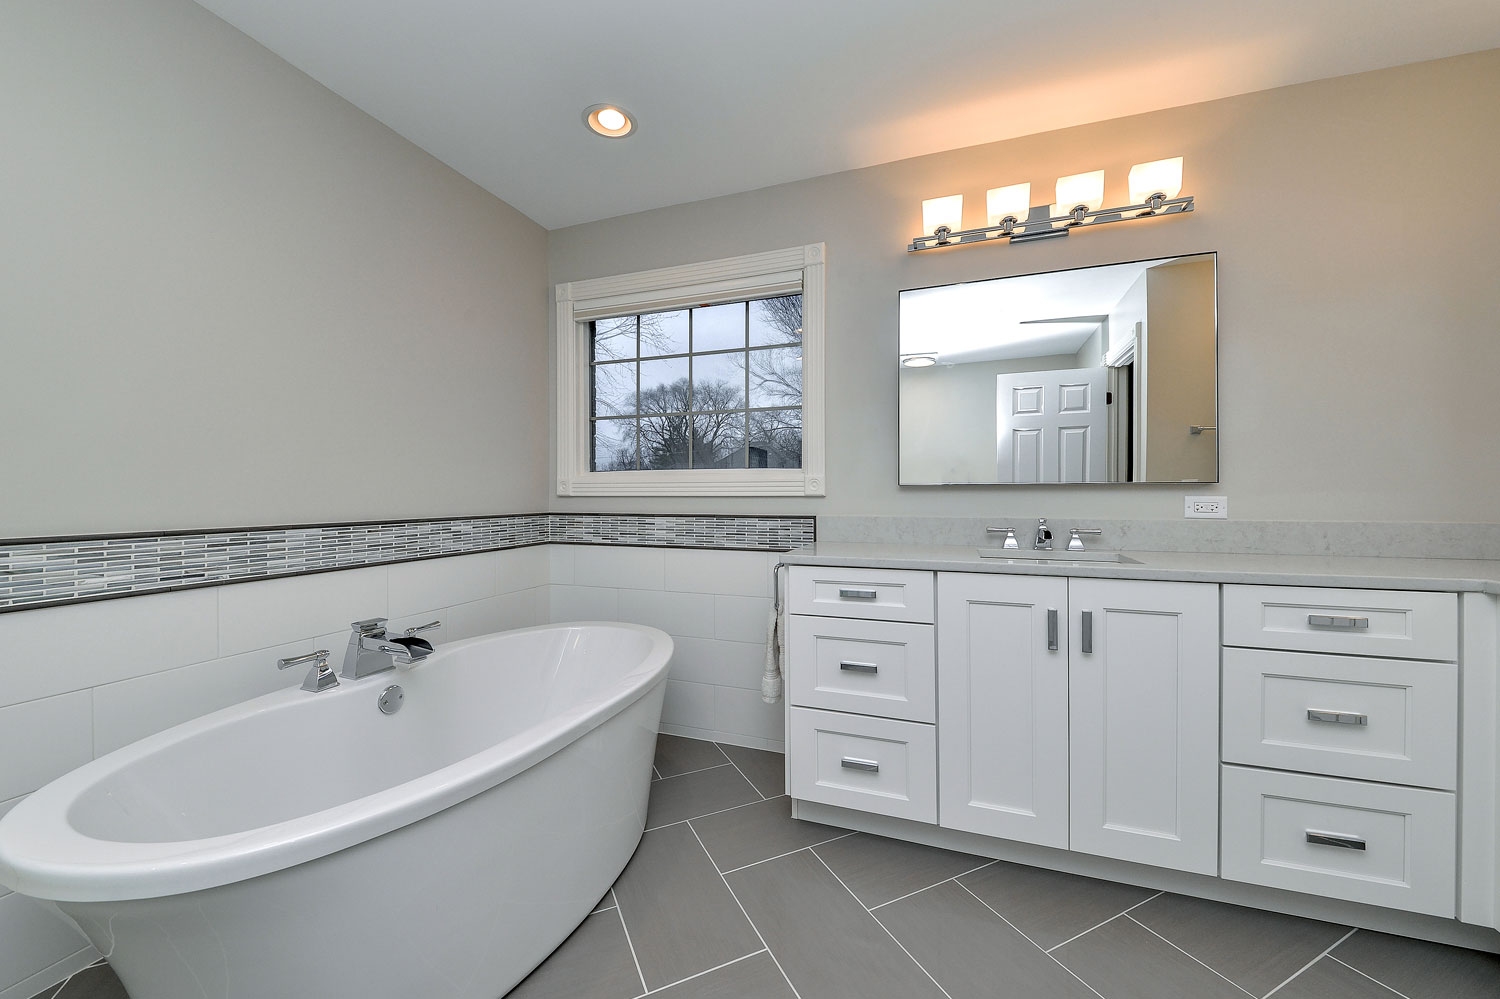 Hinsdale Master Bathroom Remodeling Project - Sebring Services